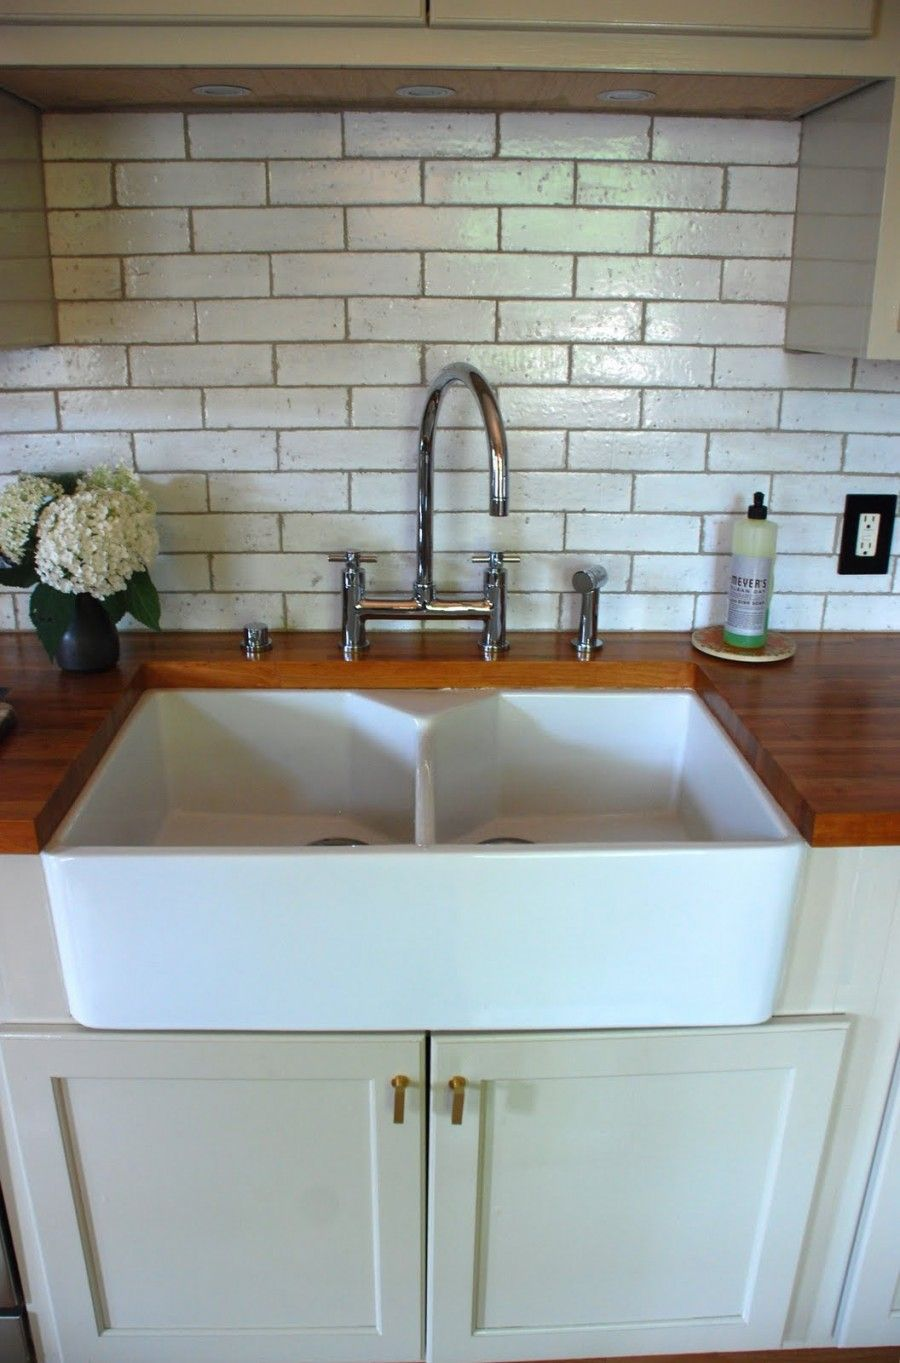 Shaw Farmhouse Sink Reviews Ikea Domsjo Sink Undermount Installed With Butcher Block Counters